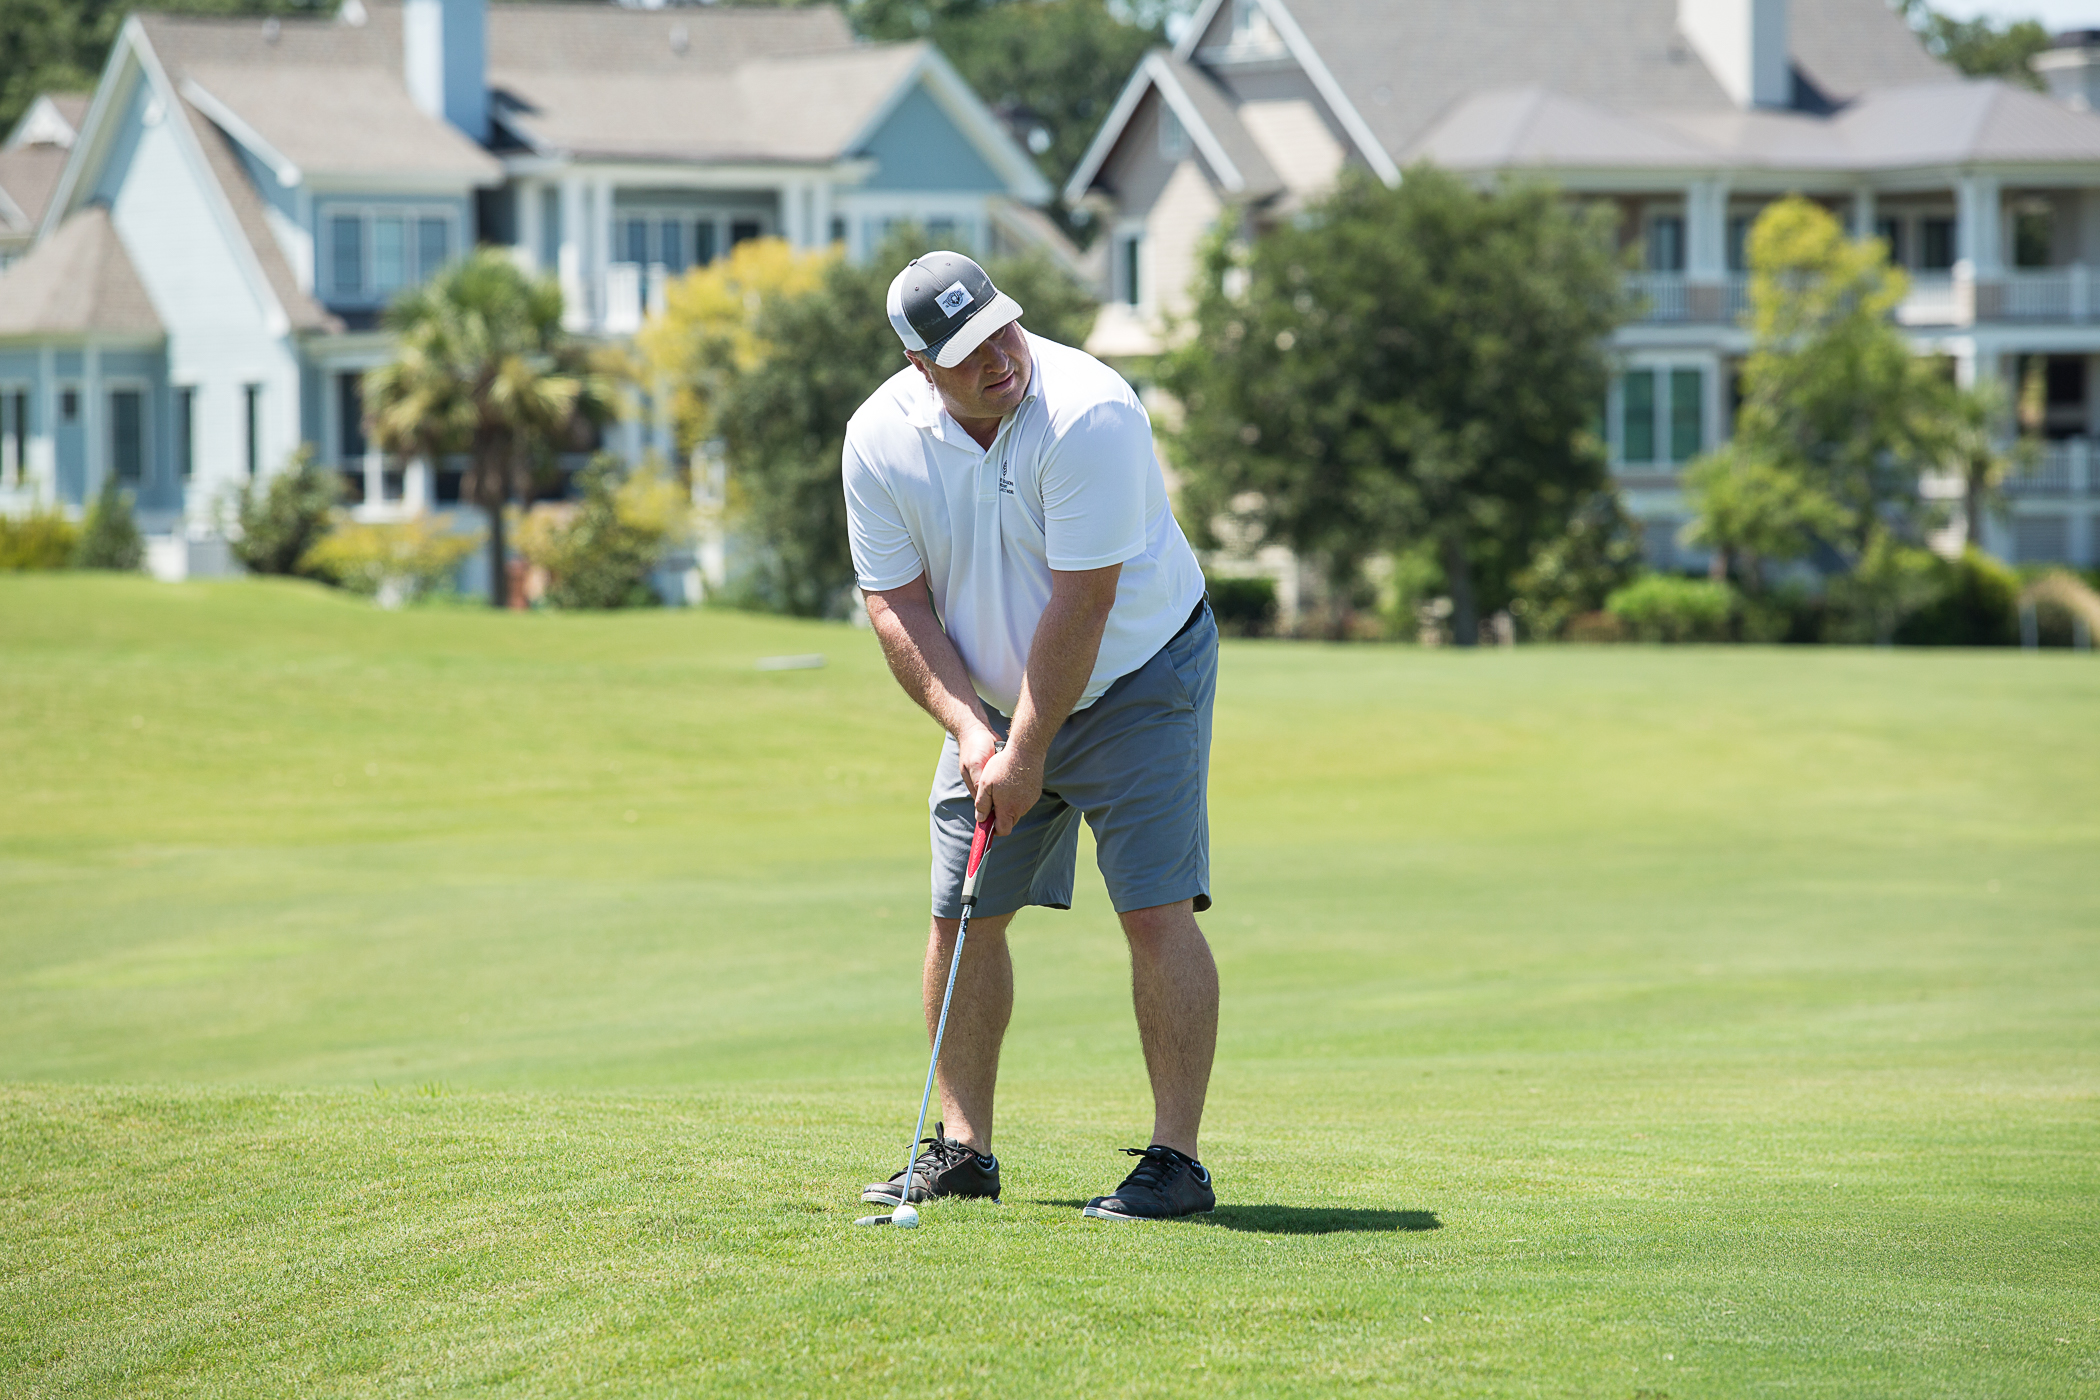 Some 100 golfers were treated to a day of excellent weather and championship golf on the Daniel Island Club's Ralston Creek Course.